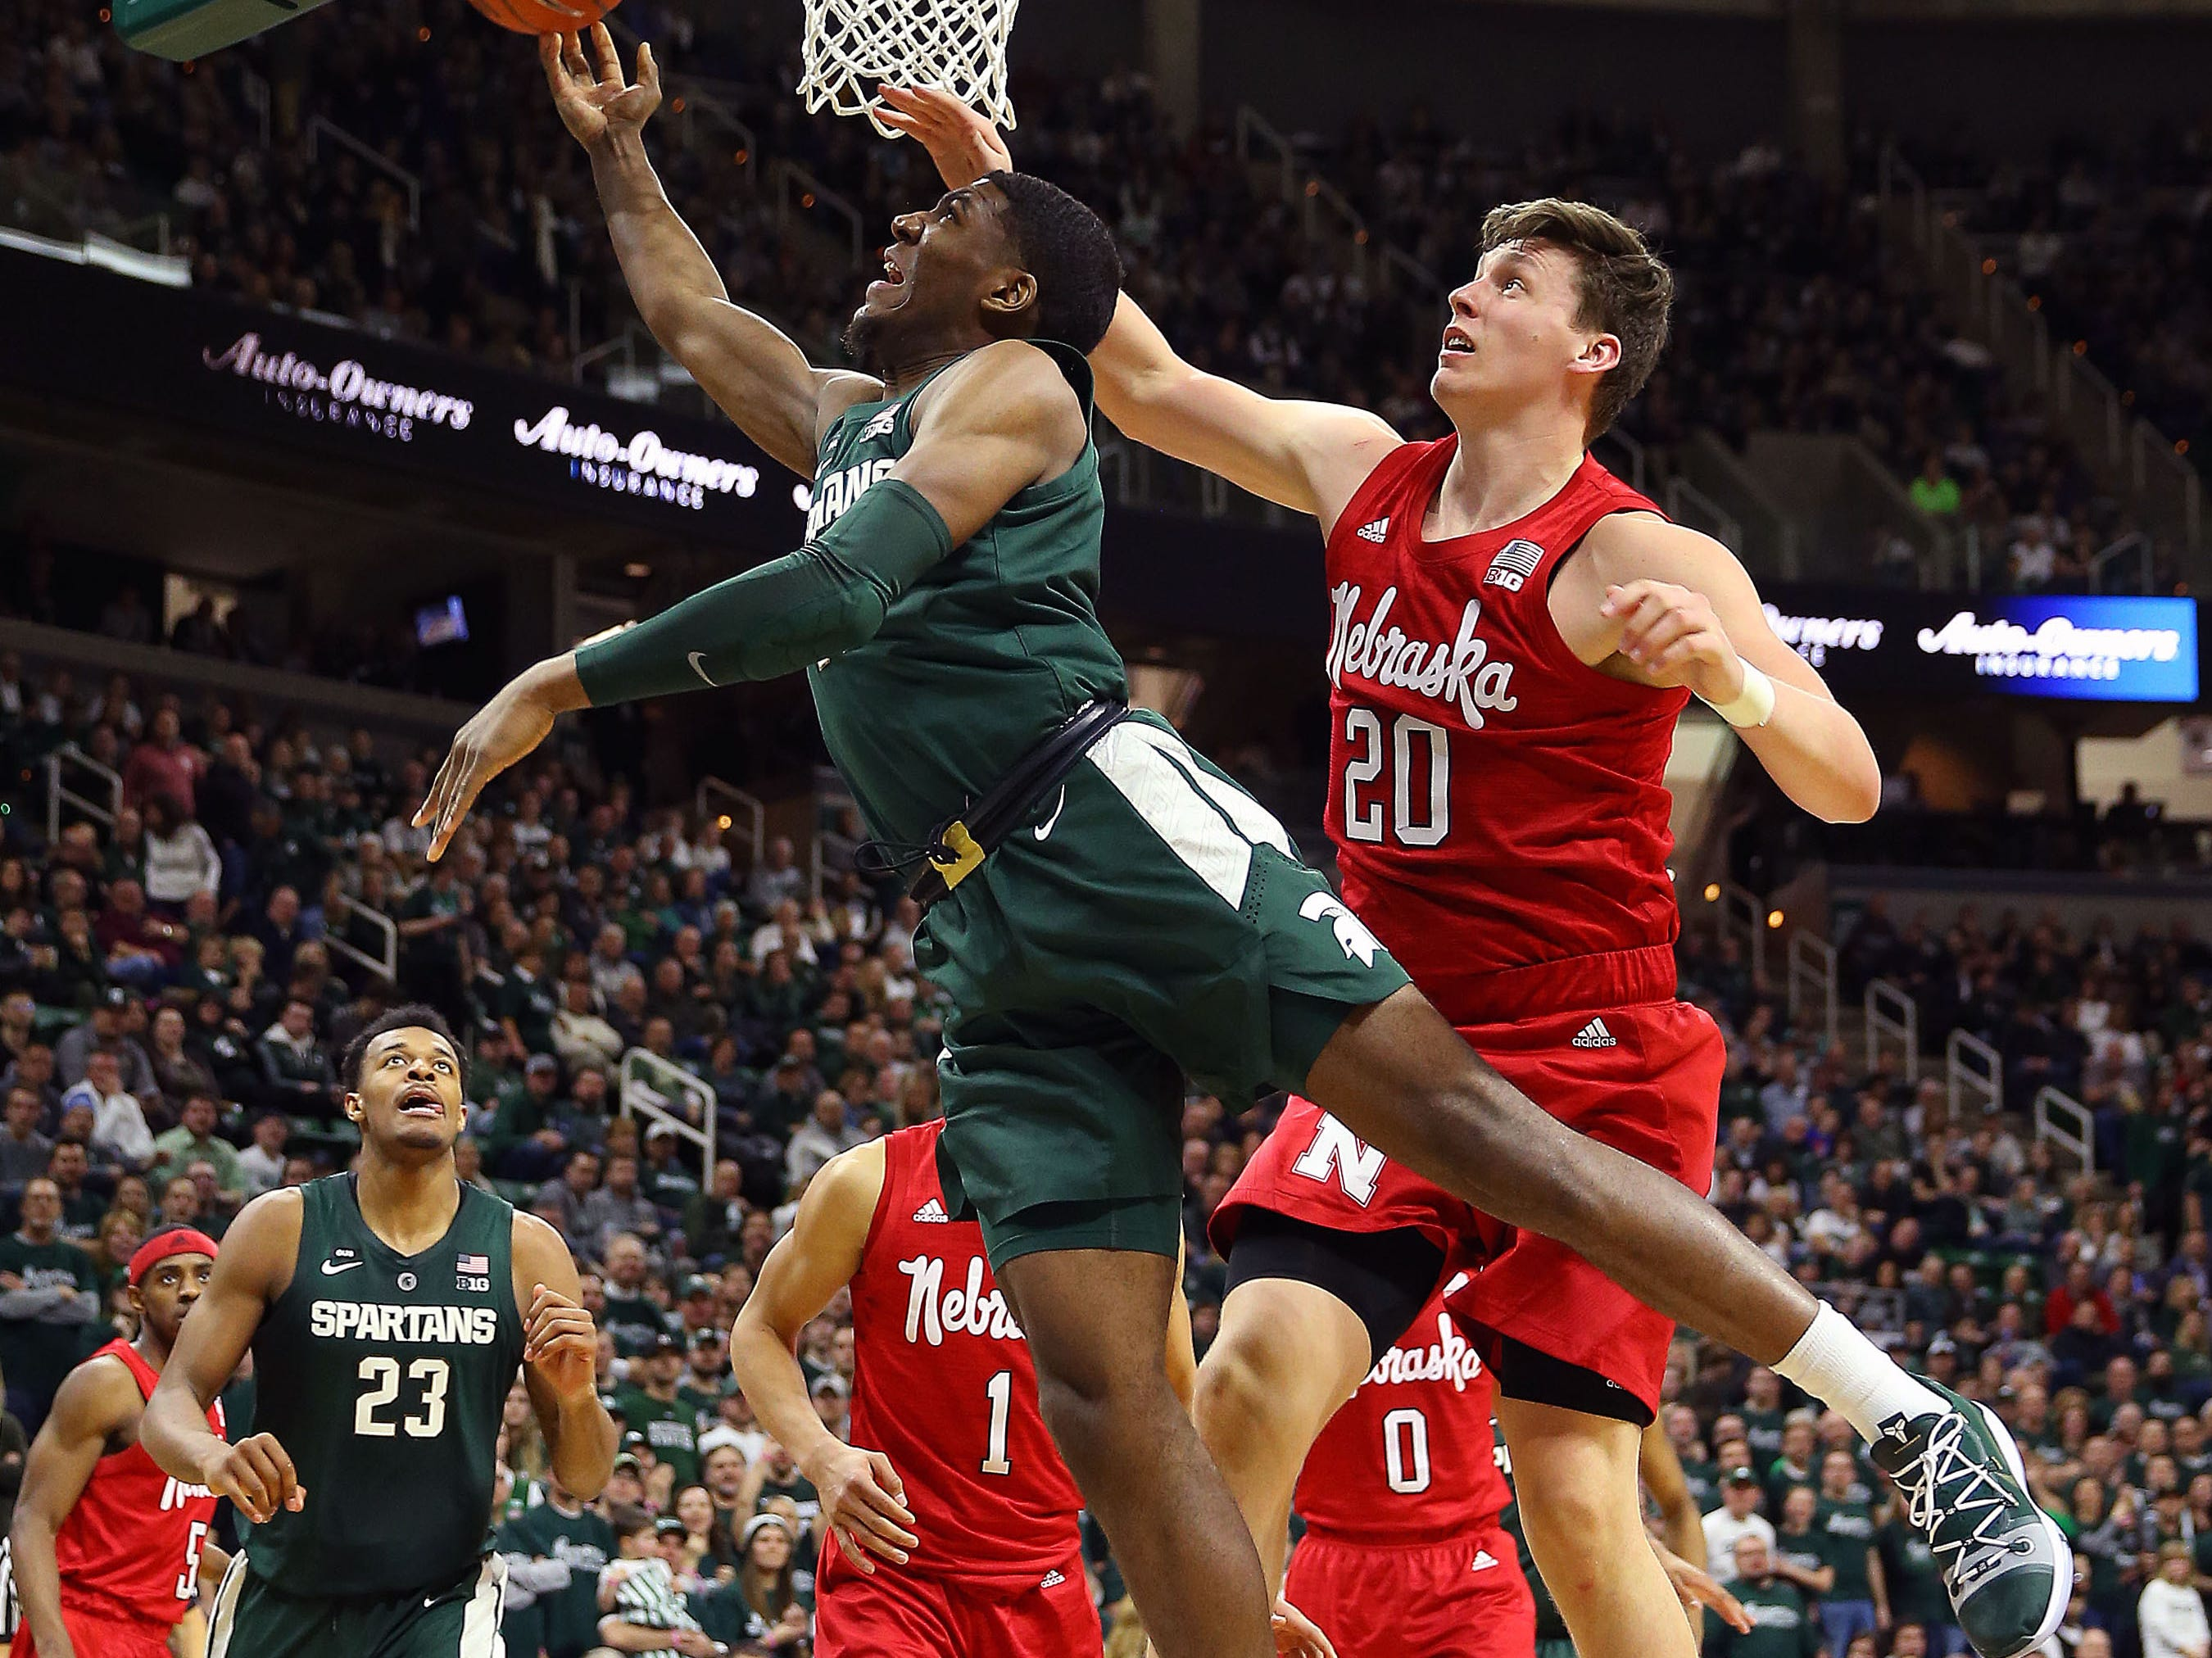 Mar 5, 2019; East Lansing, MI, USA; Michigan State Spartans forward Aaron Henry (11) drives to the basket against Nebraska Cornhuskers forward Tanner Borchardt (20) during the second half at the Breslin Center. Mandatory Credit: Mike Carter-USA TODAY Sports